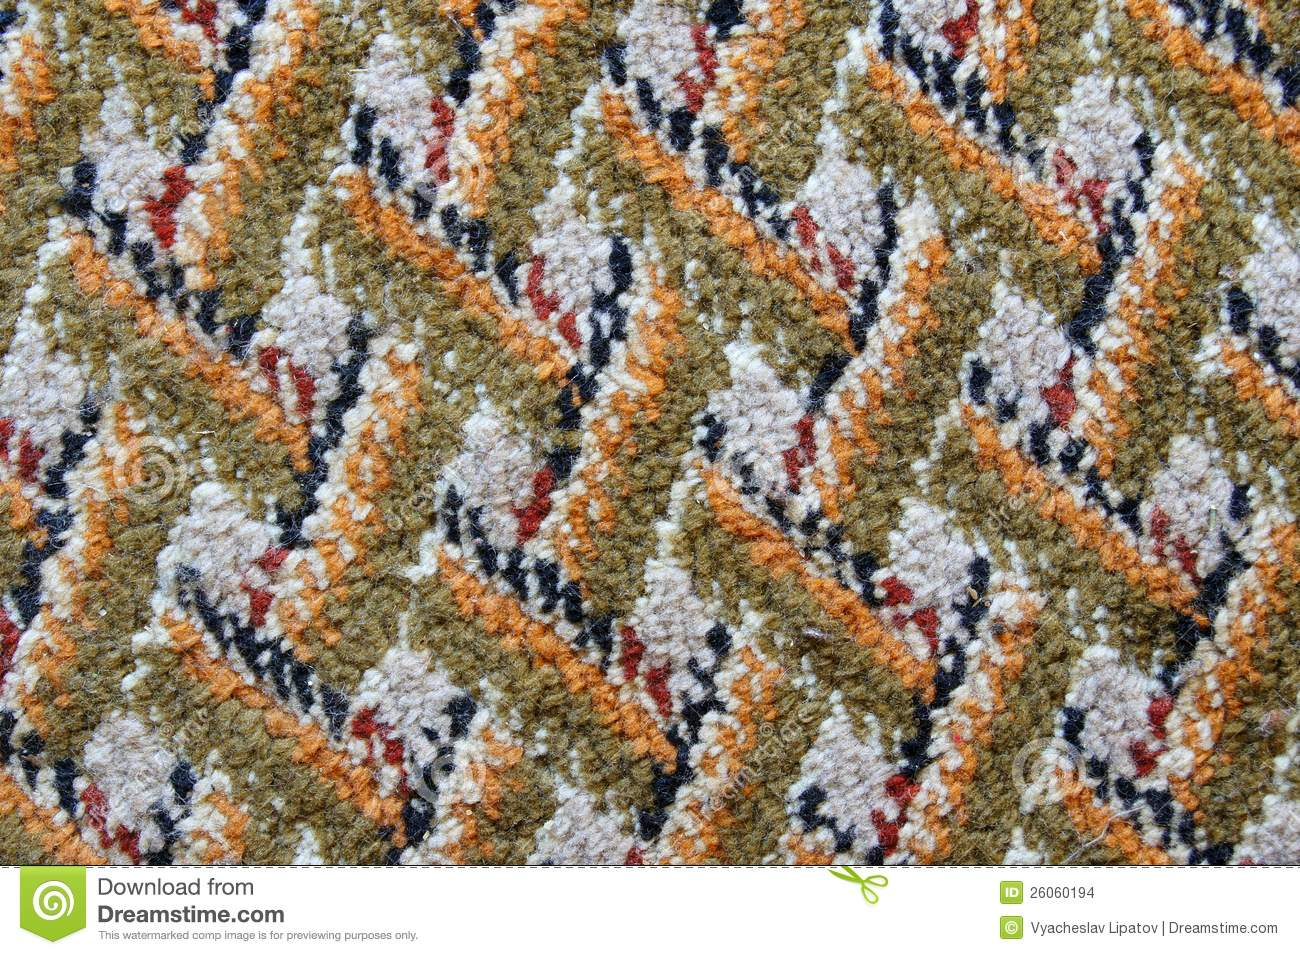 The surface of the patterned carpet